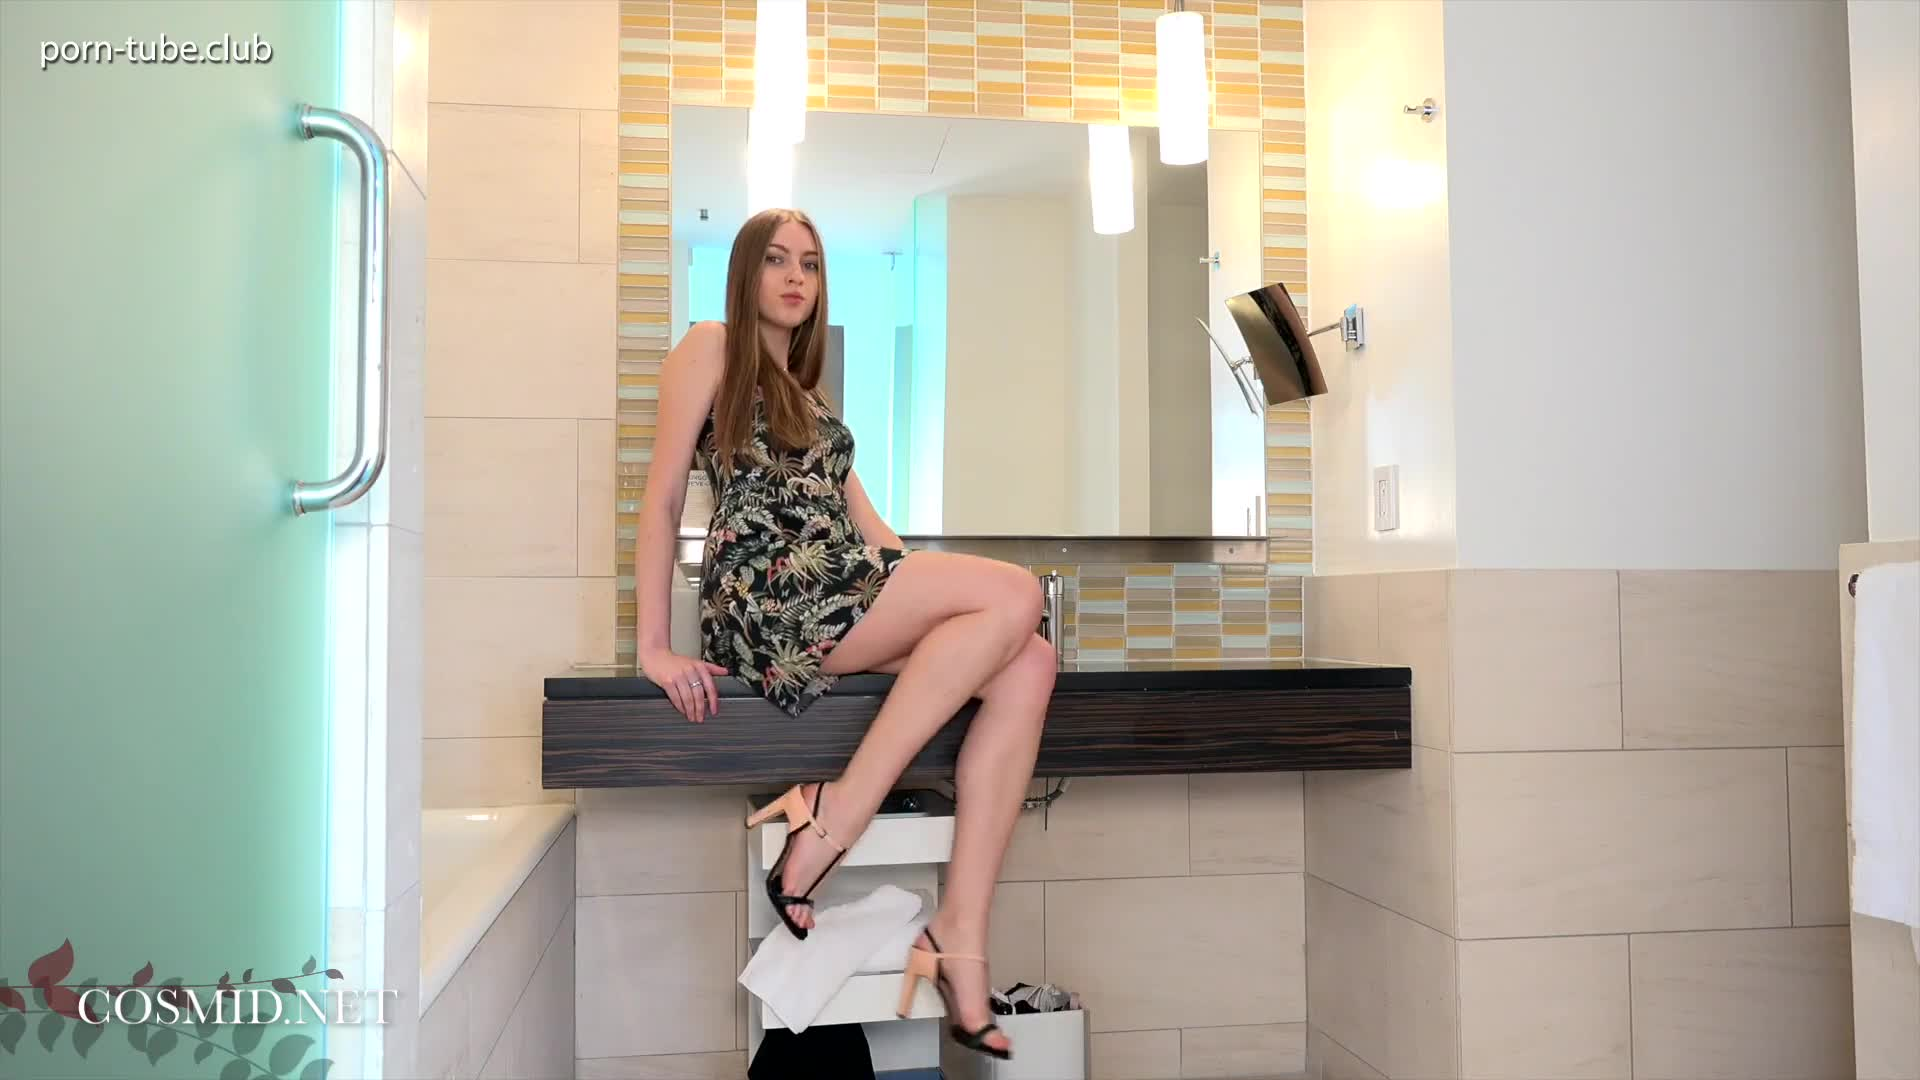 Cosmid 18.02.04 Lacey Nami In The Bathroom